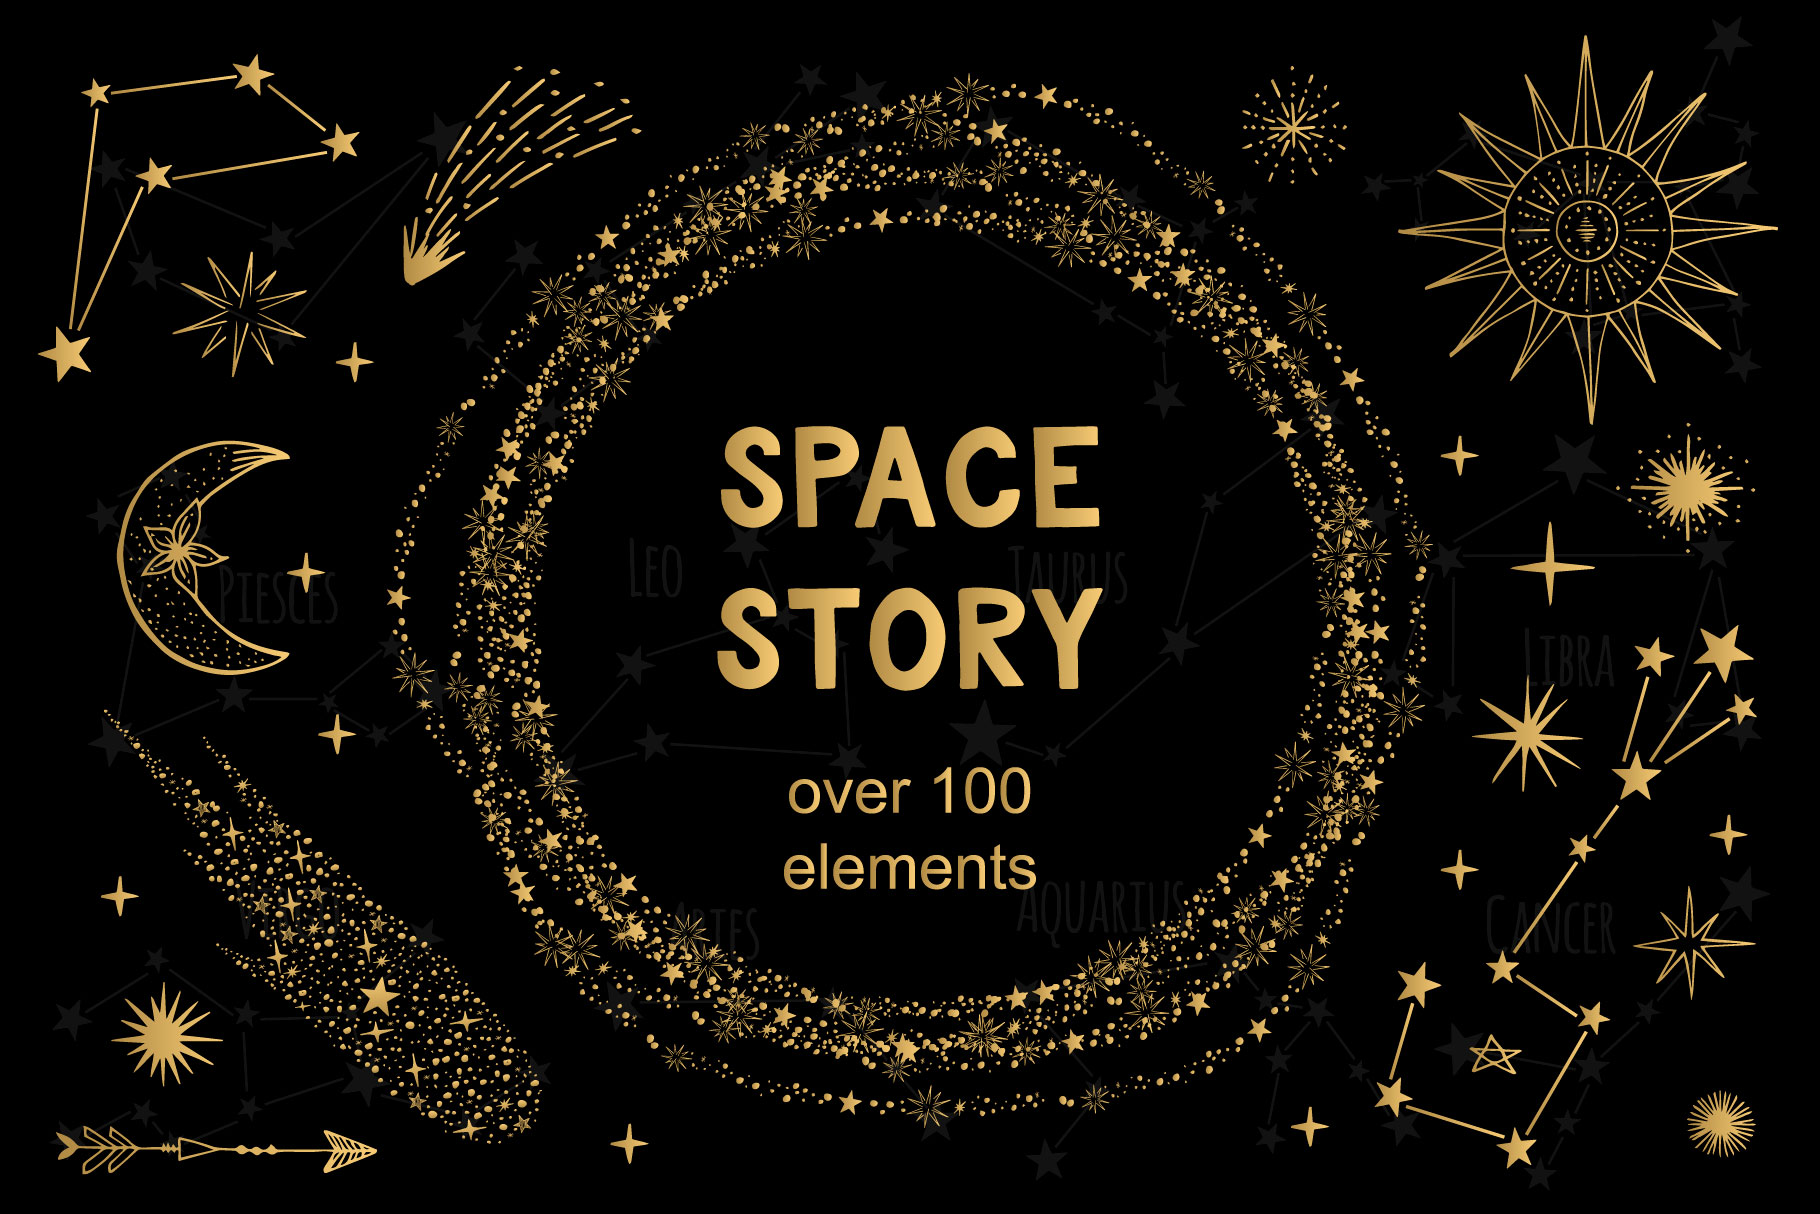 Space story example image 1